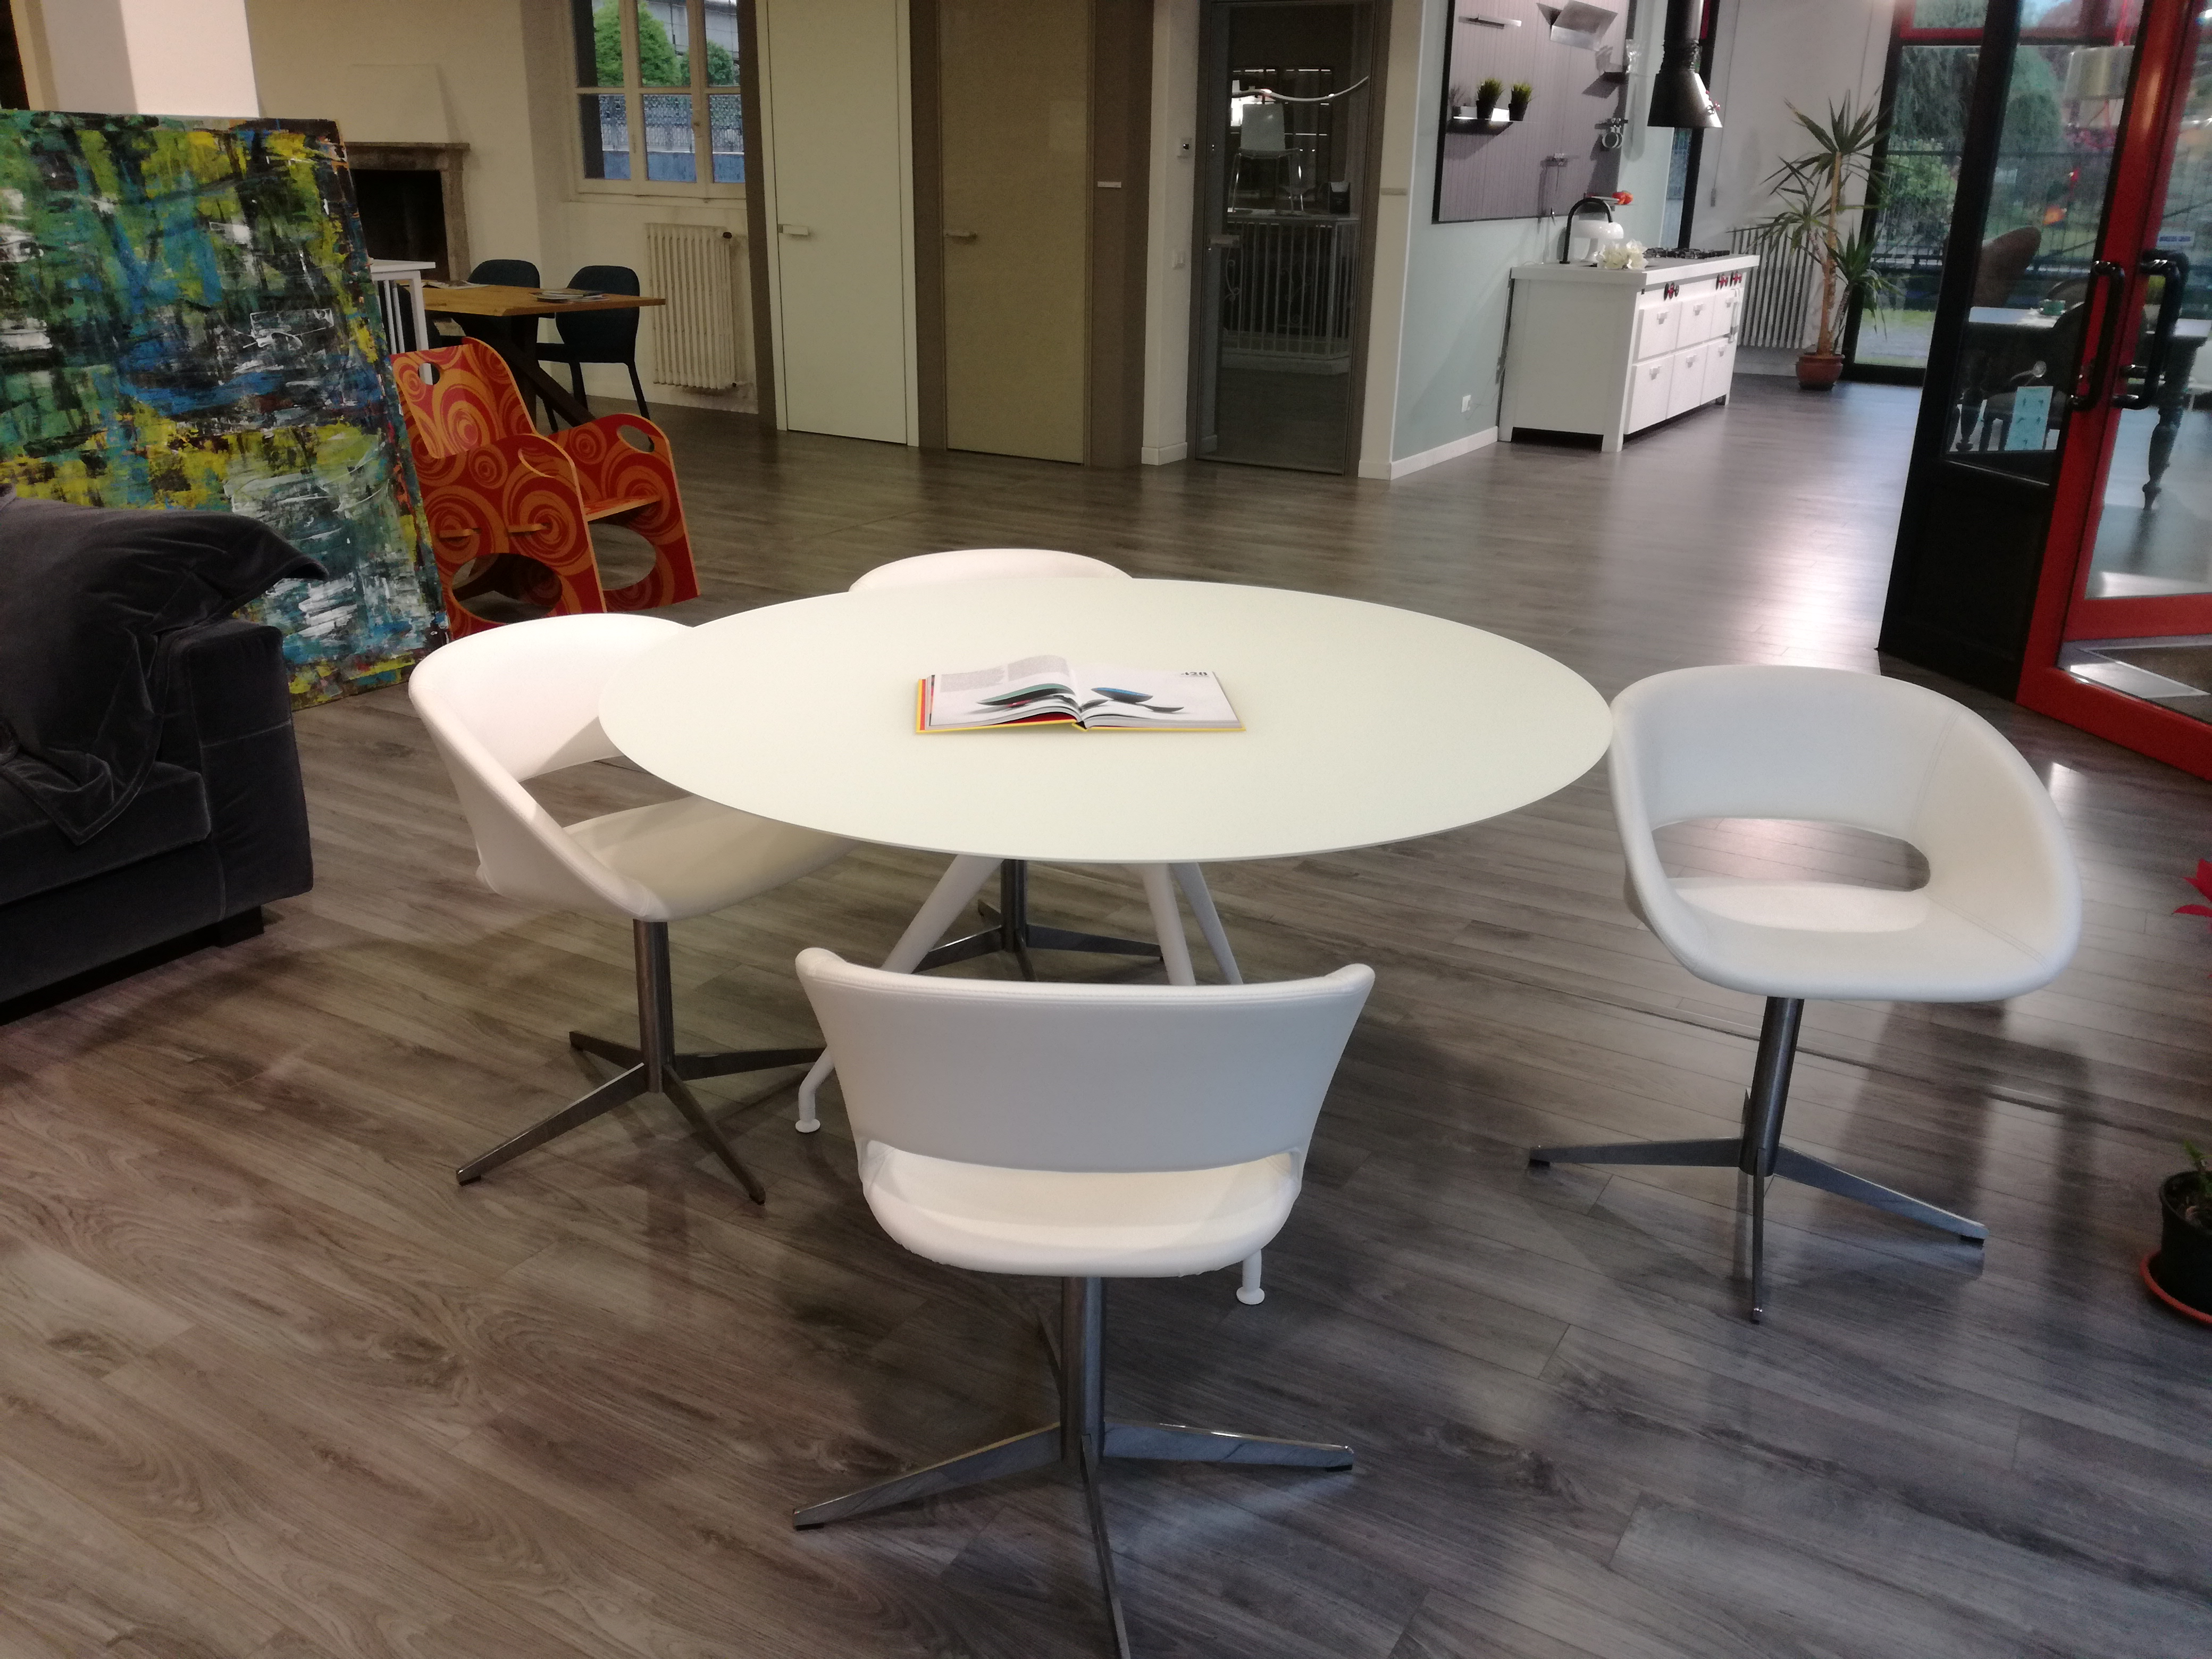 Table manta rimadesio for Rimadesio outlet